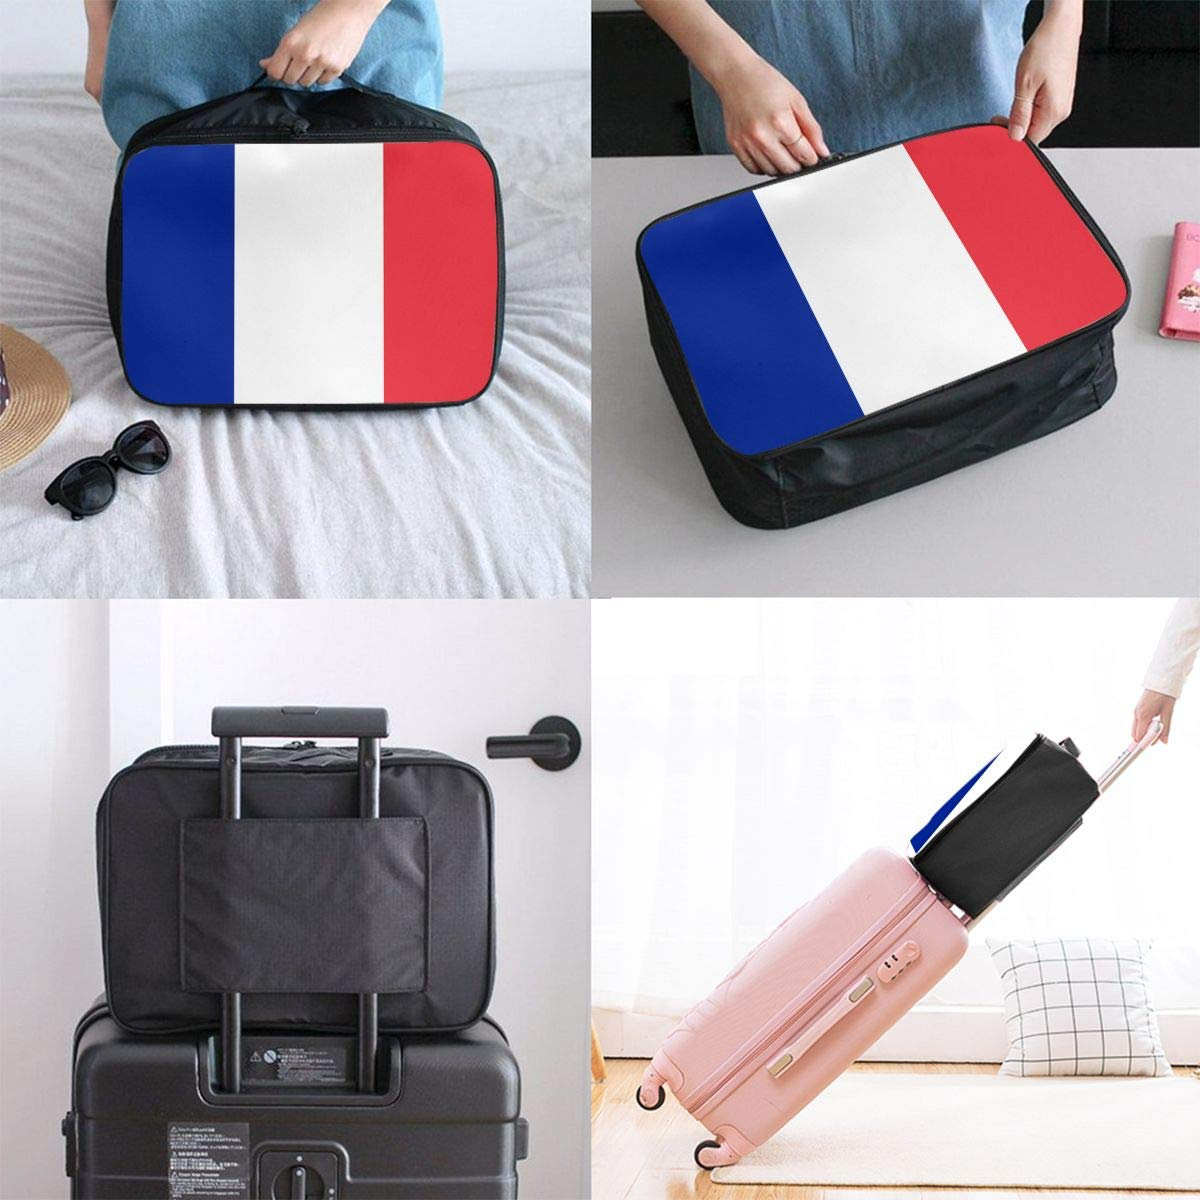 YueLJB Flag France Lightweight Large Capacity Portable Luggage Bag Travel Duffel Bag Storage Carry Luggage Duffle Tote Bag